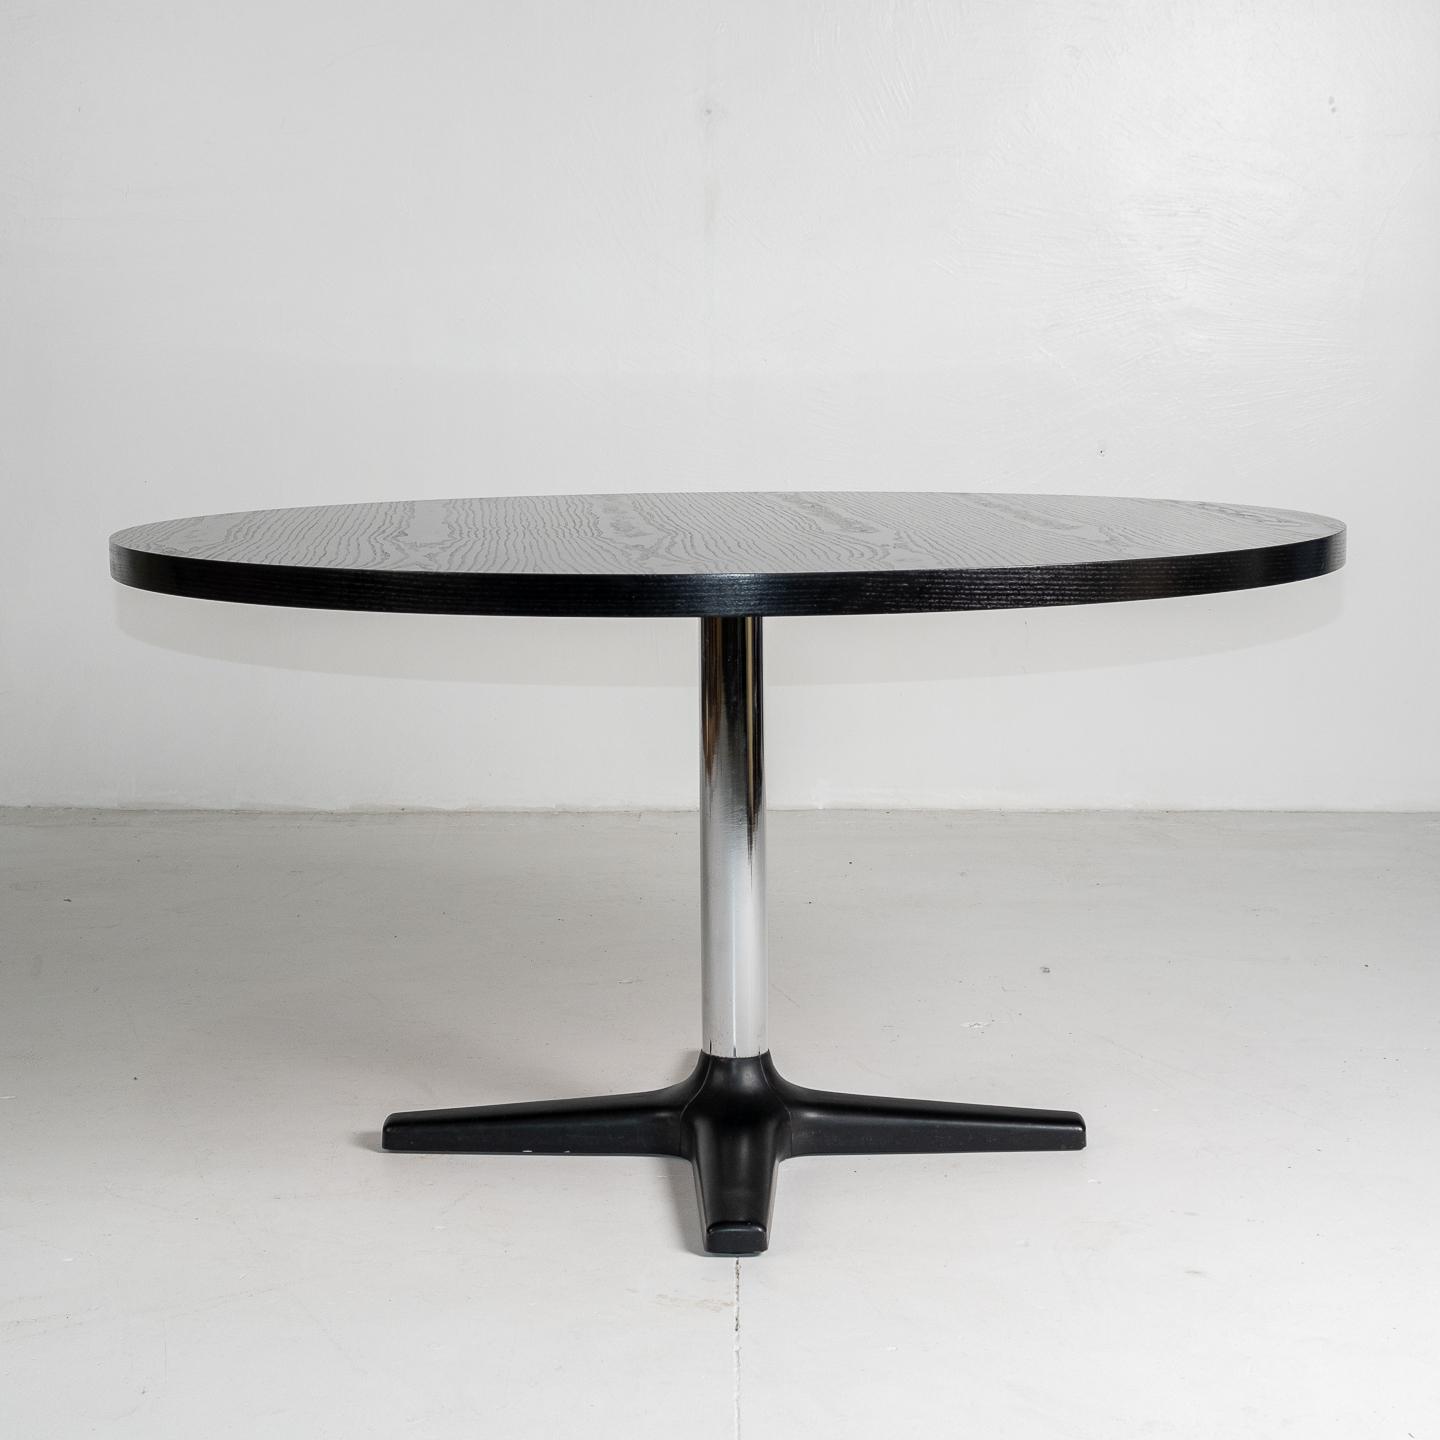 Round Dining Table For Pastoe With Chrome Pedestal Base And Painted Japanese Oak Top, 1960s, The Netherlands 2